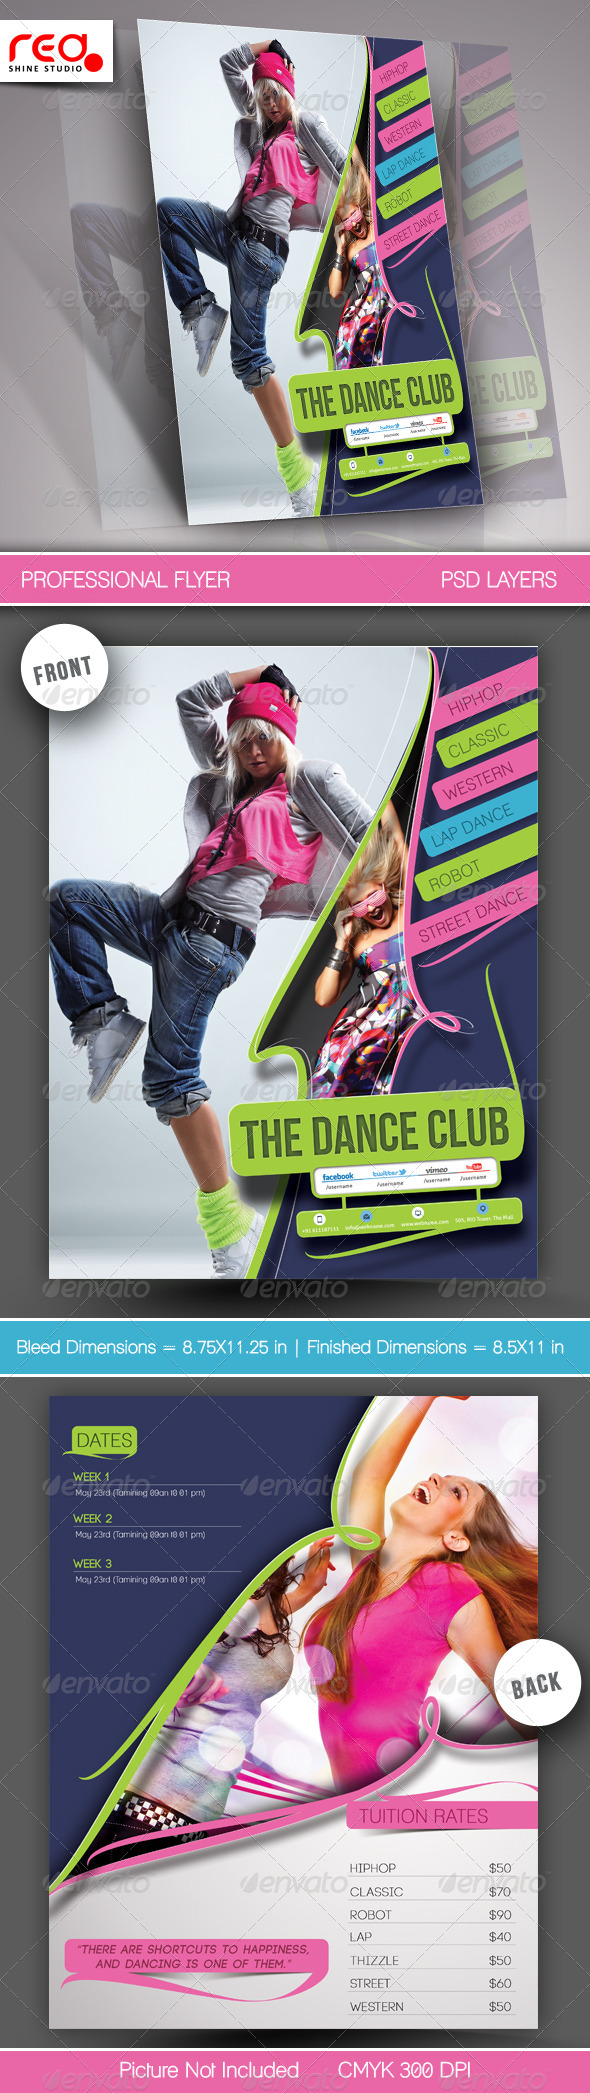 Dance Academy Flyer & Poster Template - 2  - Commerce Flyers